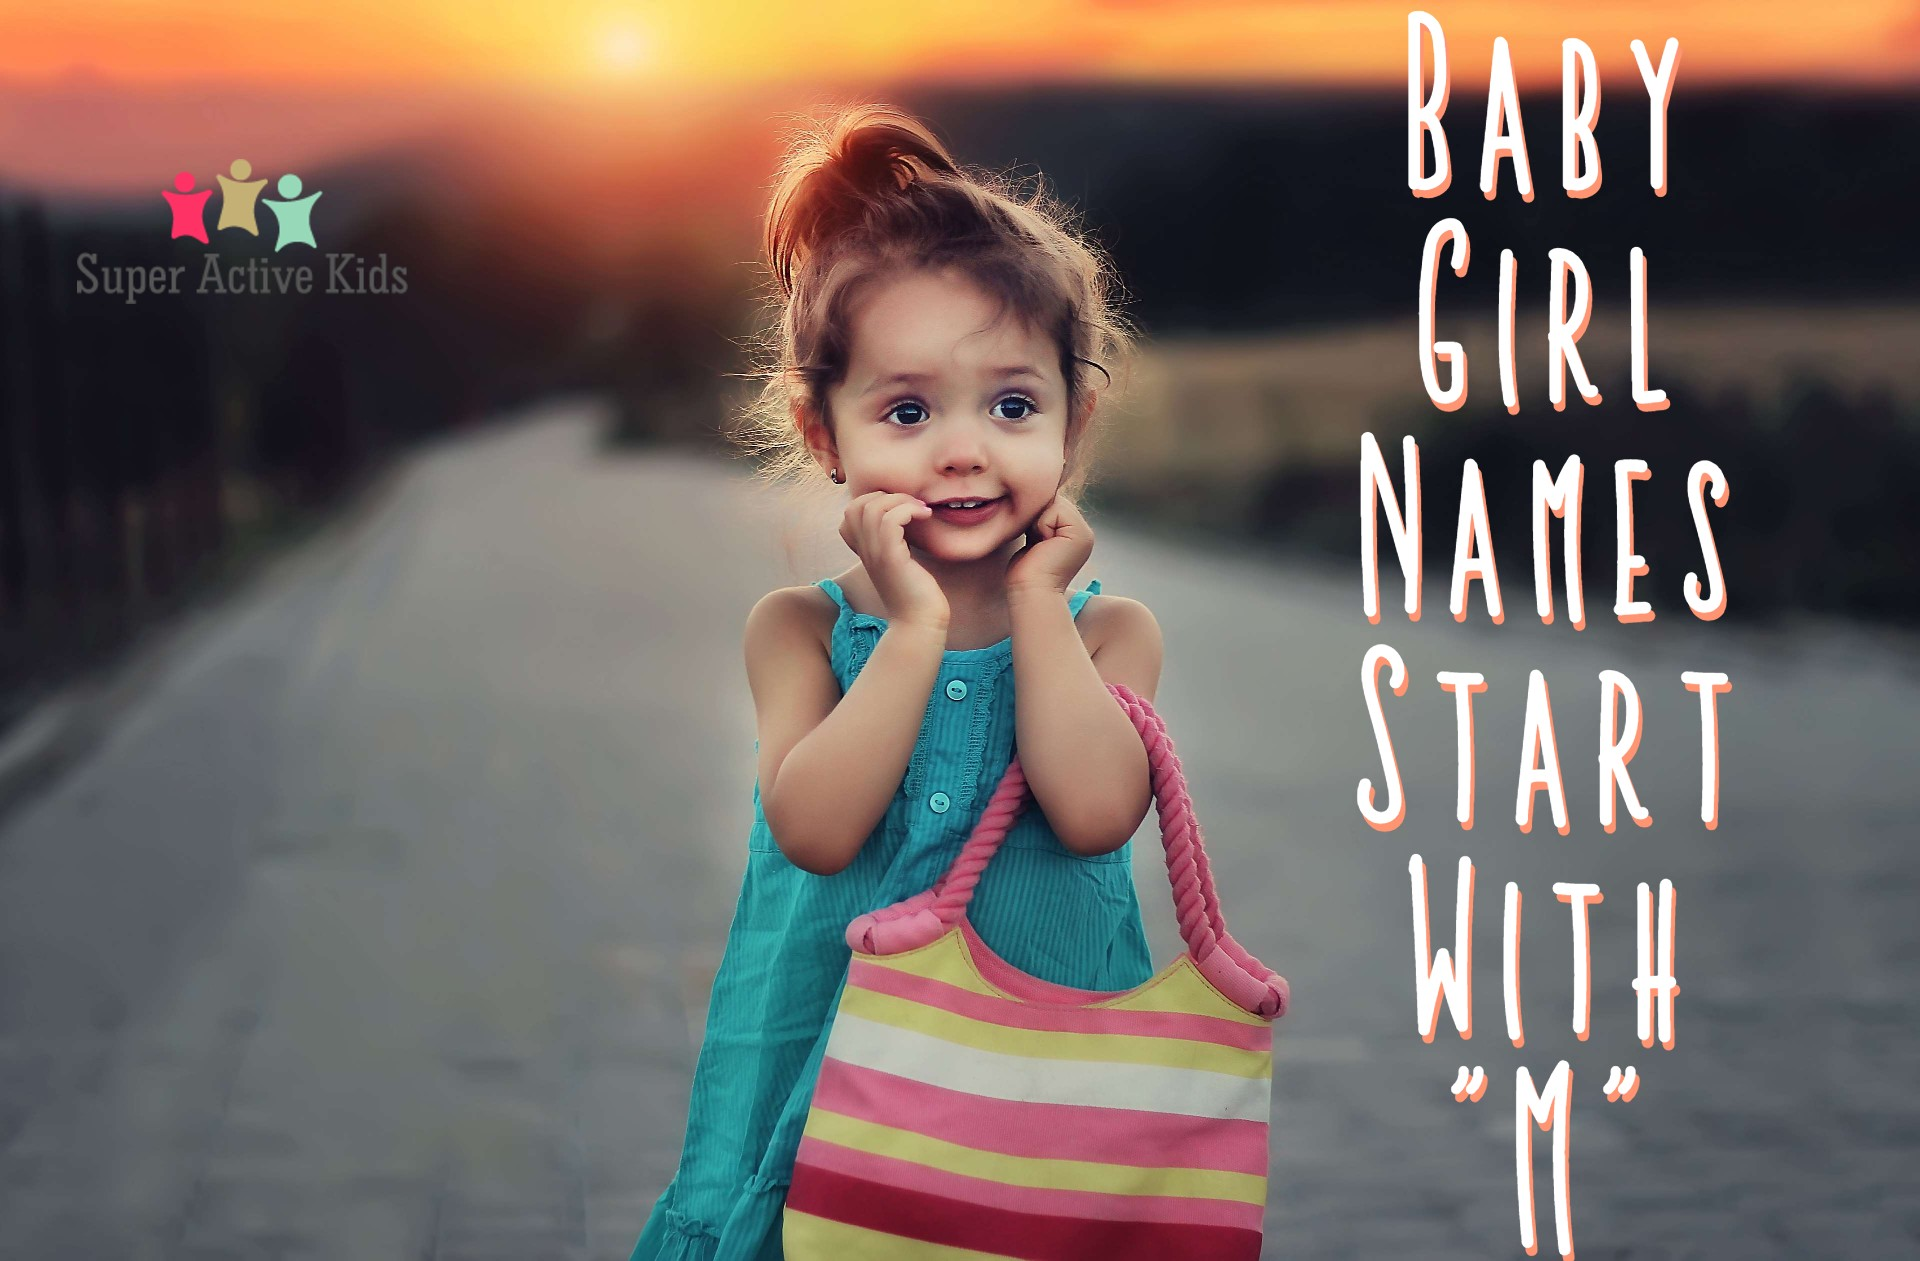 Baby Girl Start With M